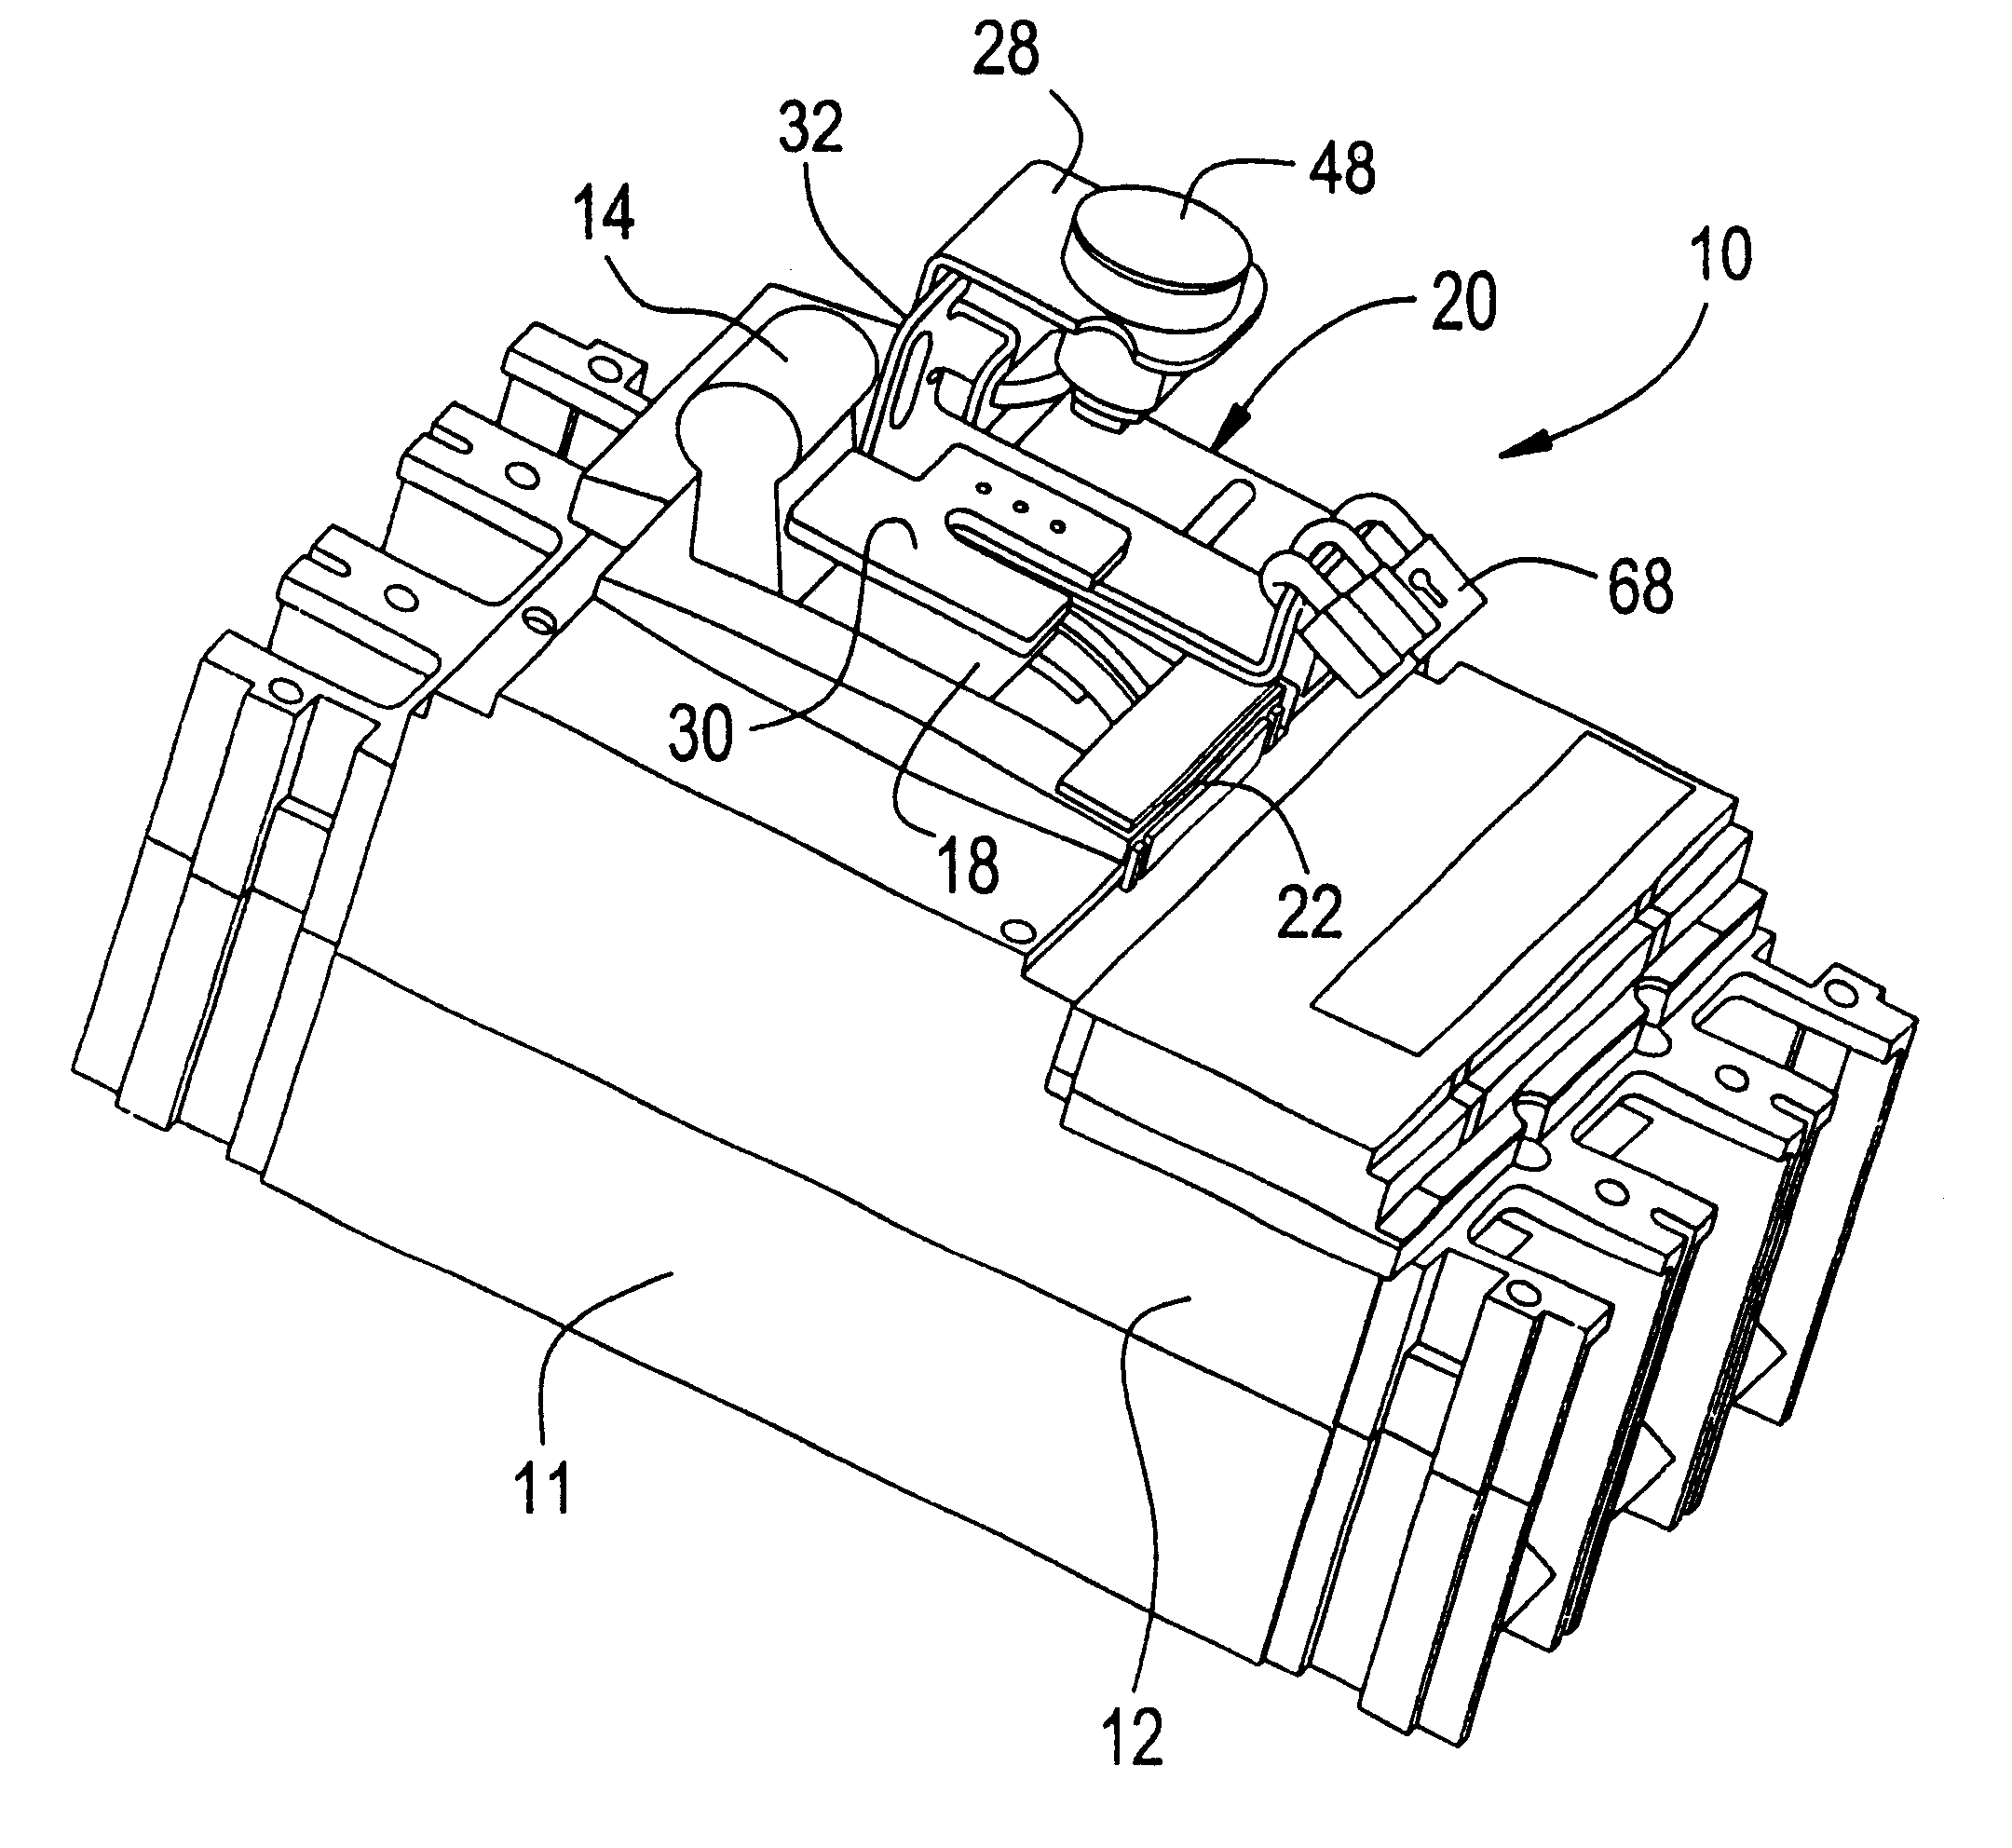 patent us6388213 - locking device for molded case circuit breakers